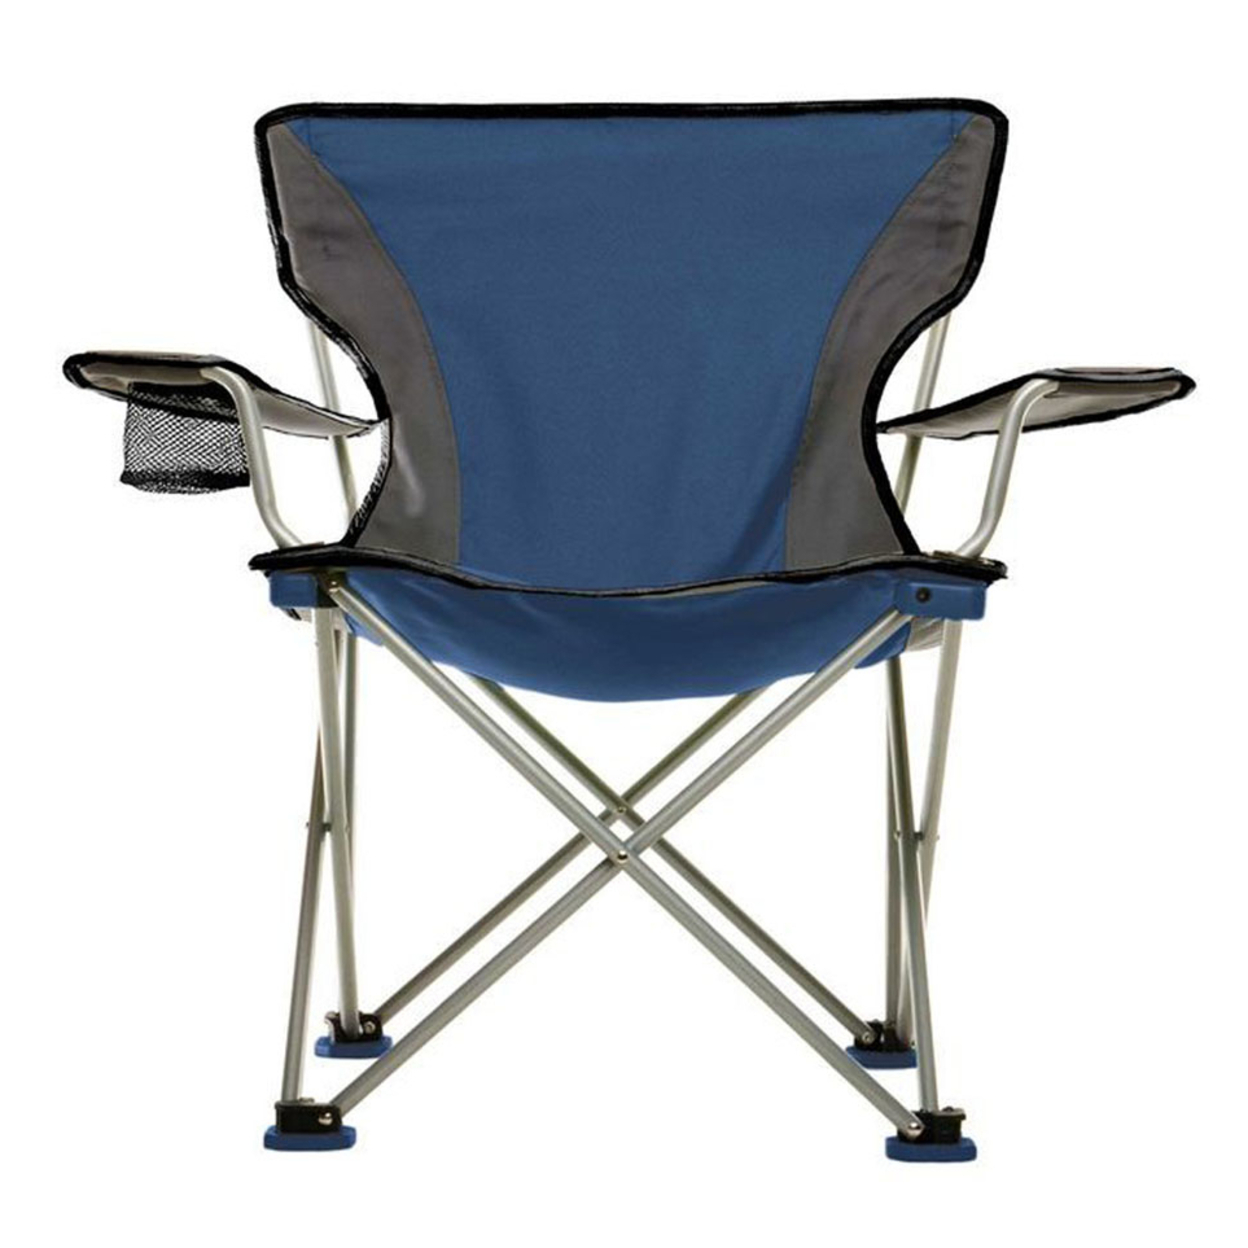 Travel Chair Foldable Easy Rider Adjustable Armrests 5989b8bc2a00e478722e0756